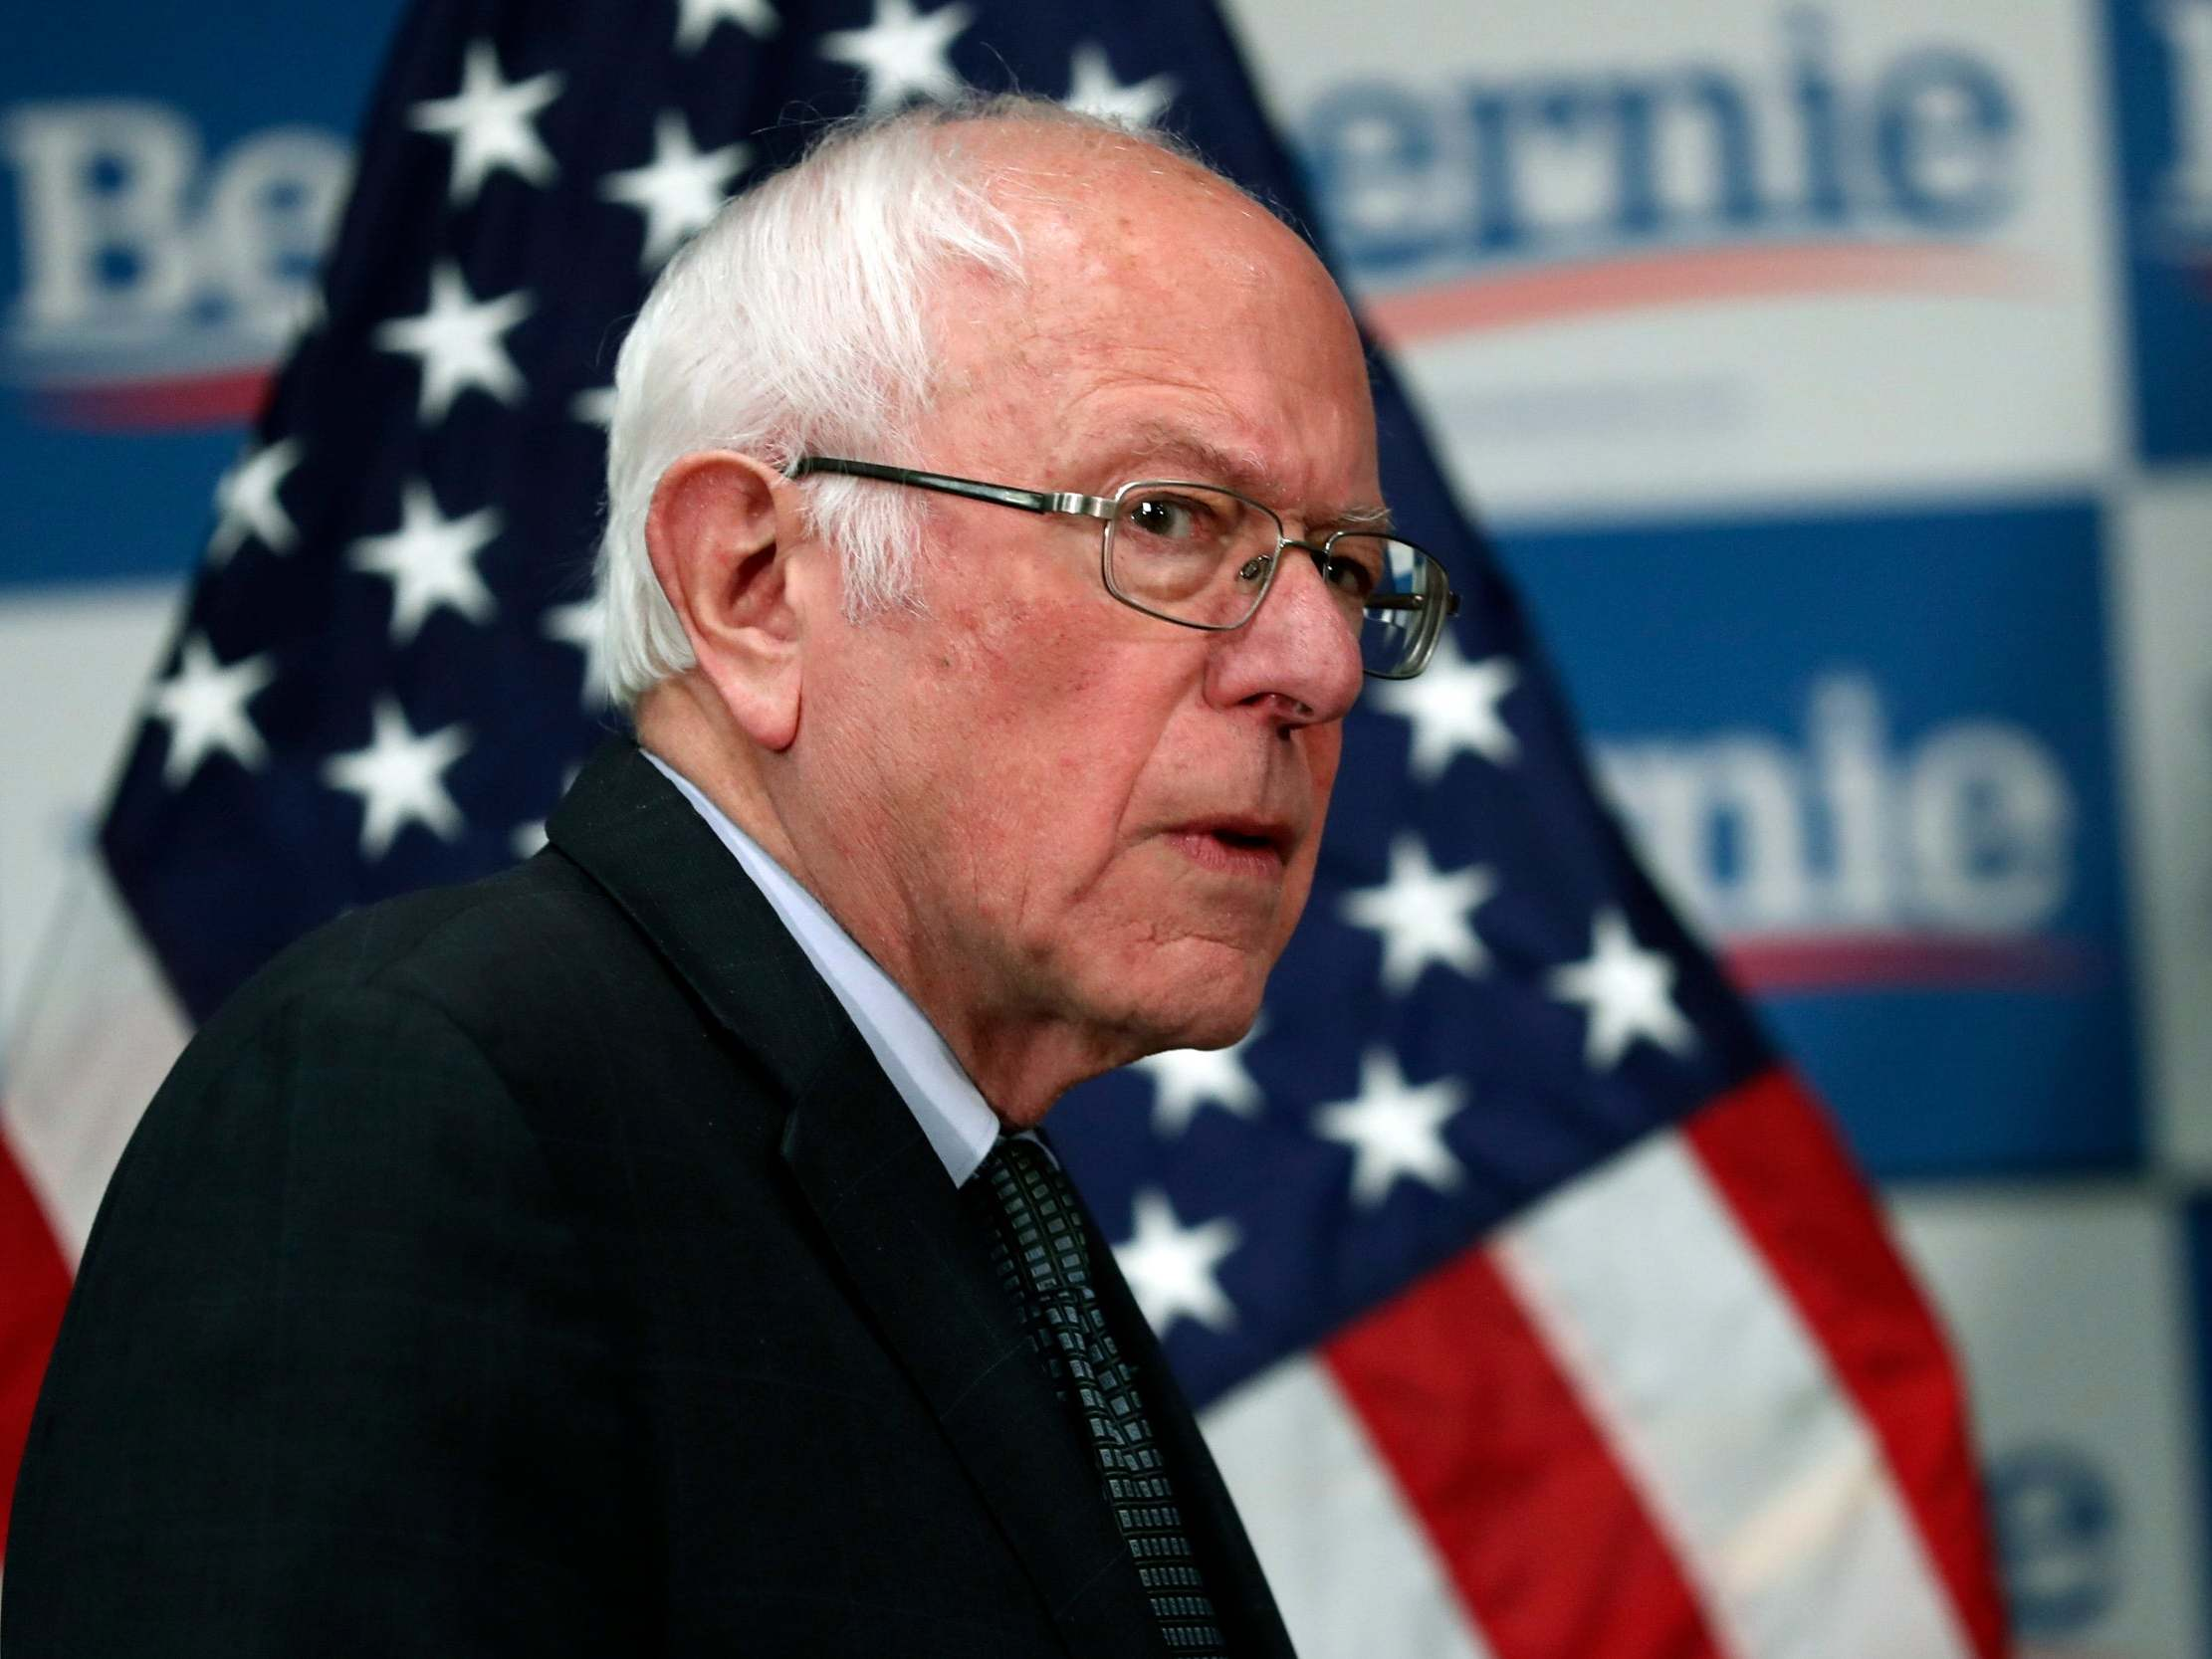 Too late, coronavirus proved Bernie Sanders was right all along